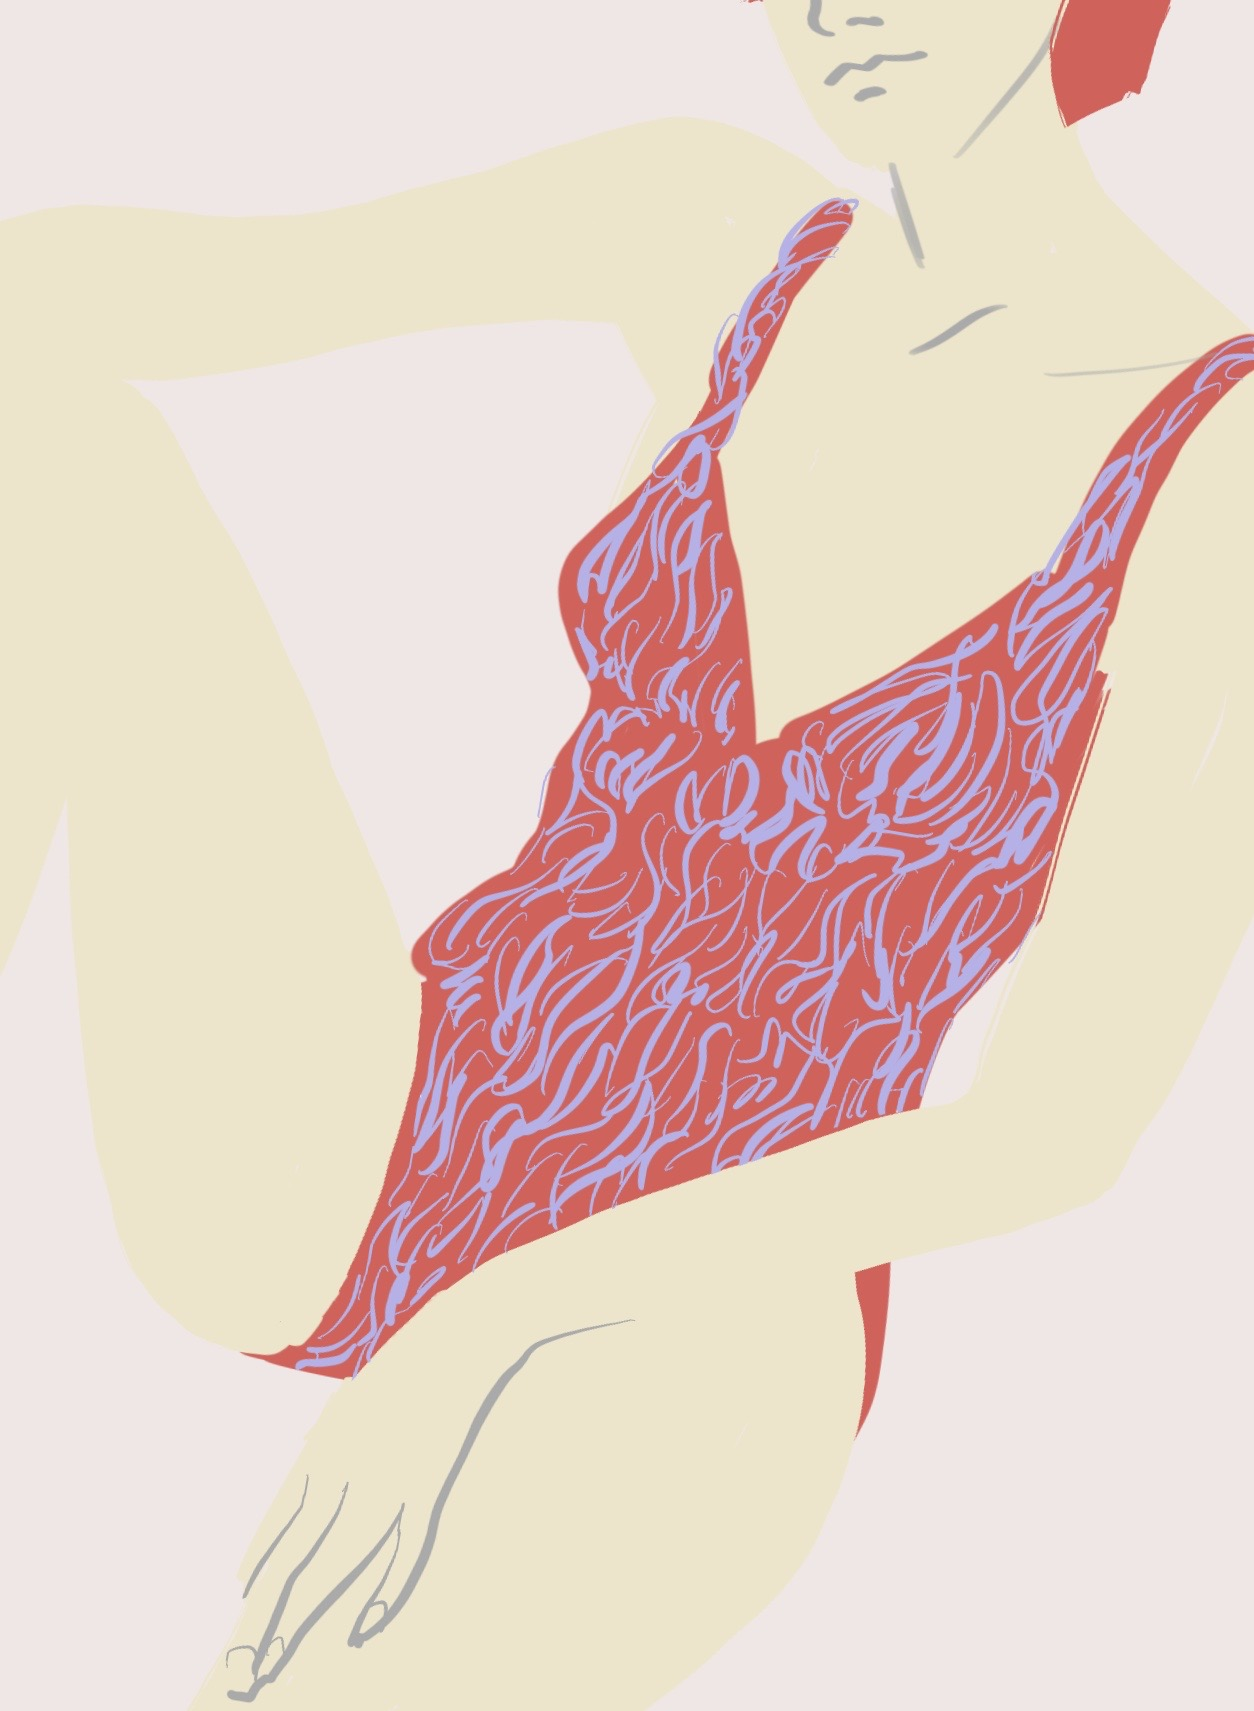 Swimvest fashion illustration by Silvana Mariani